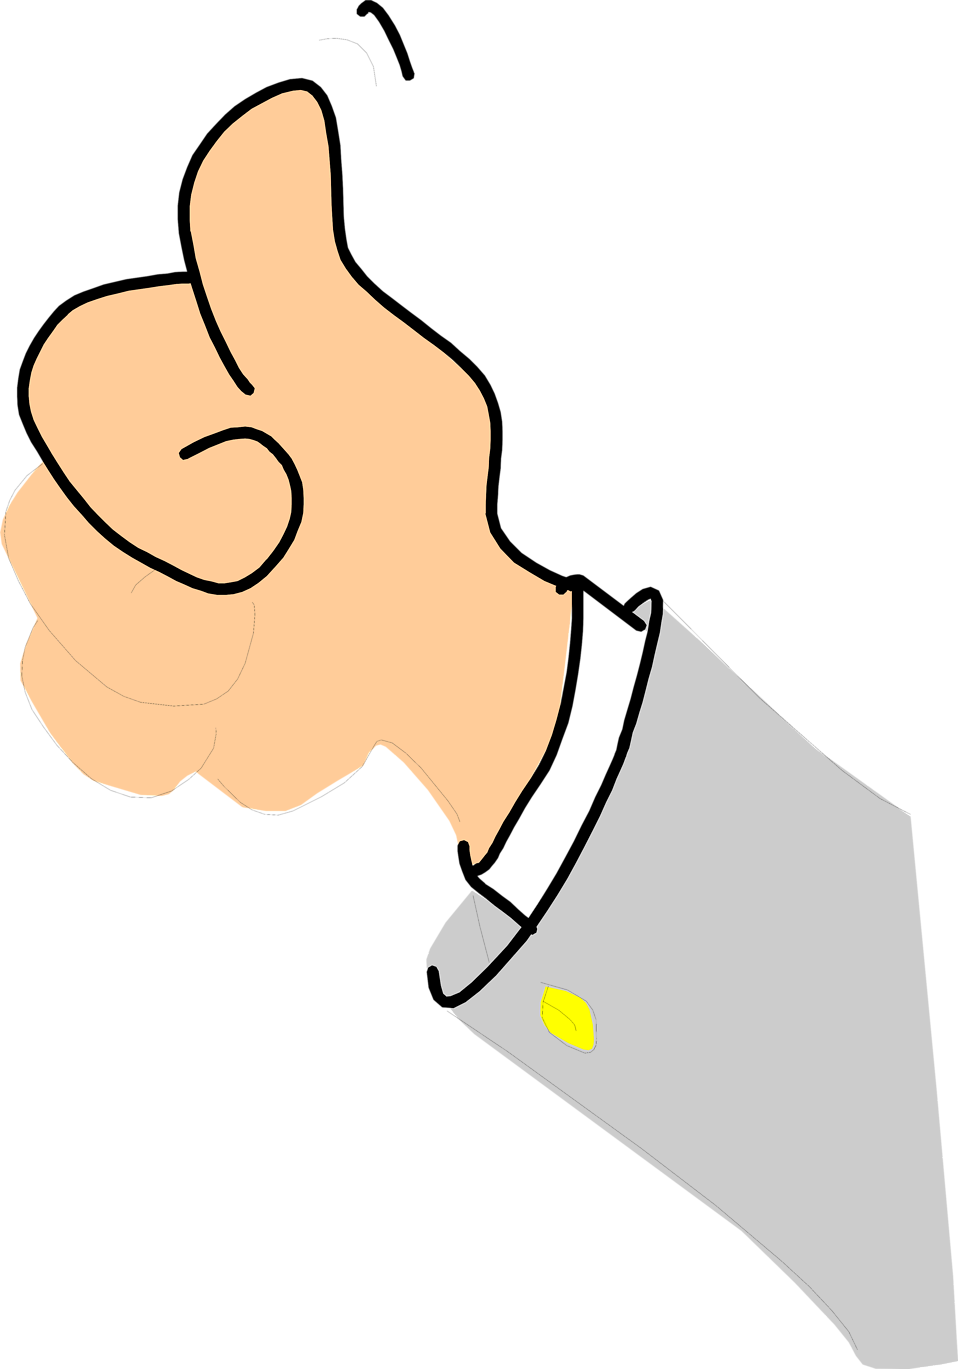 Thumbs up clipart free graphic freeuse Thumbs Up | Free Stock Photo | Illustration of a cartoon hand giving ... graphic freeuse